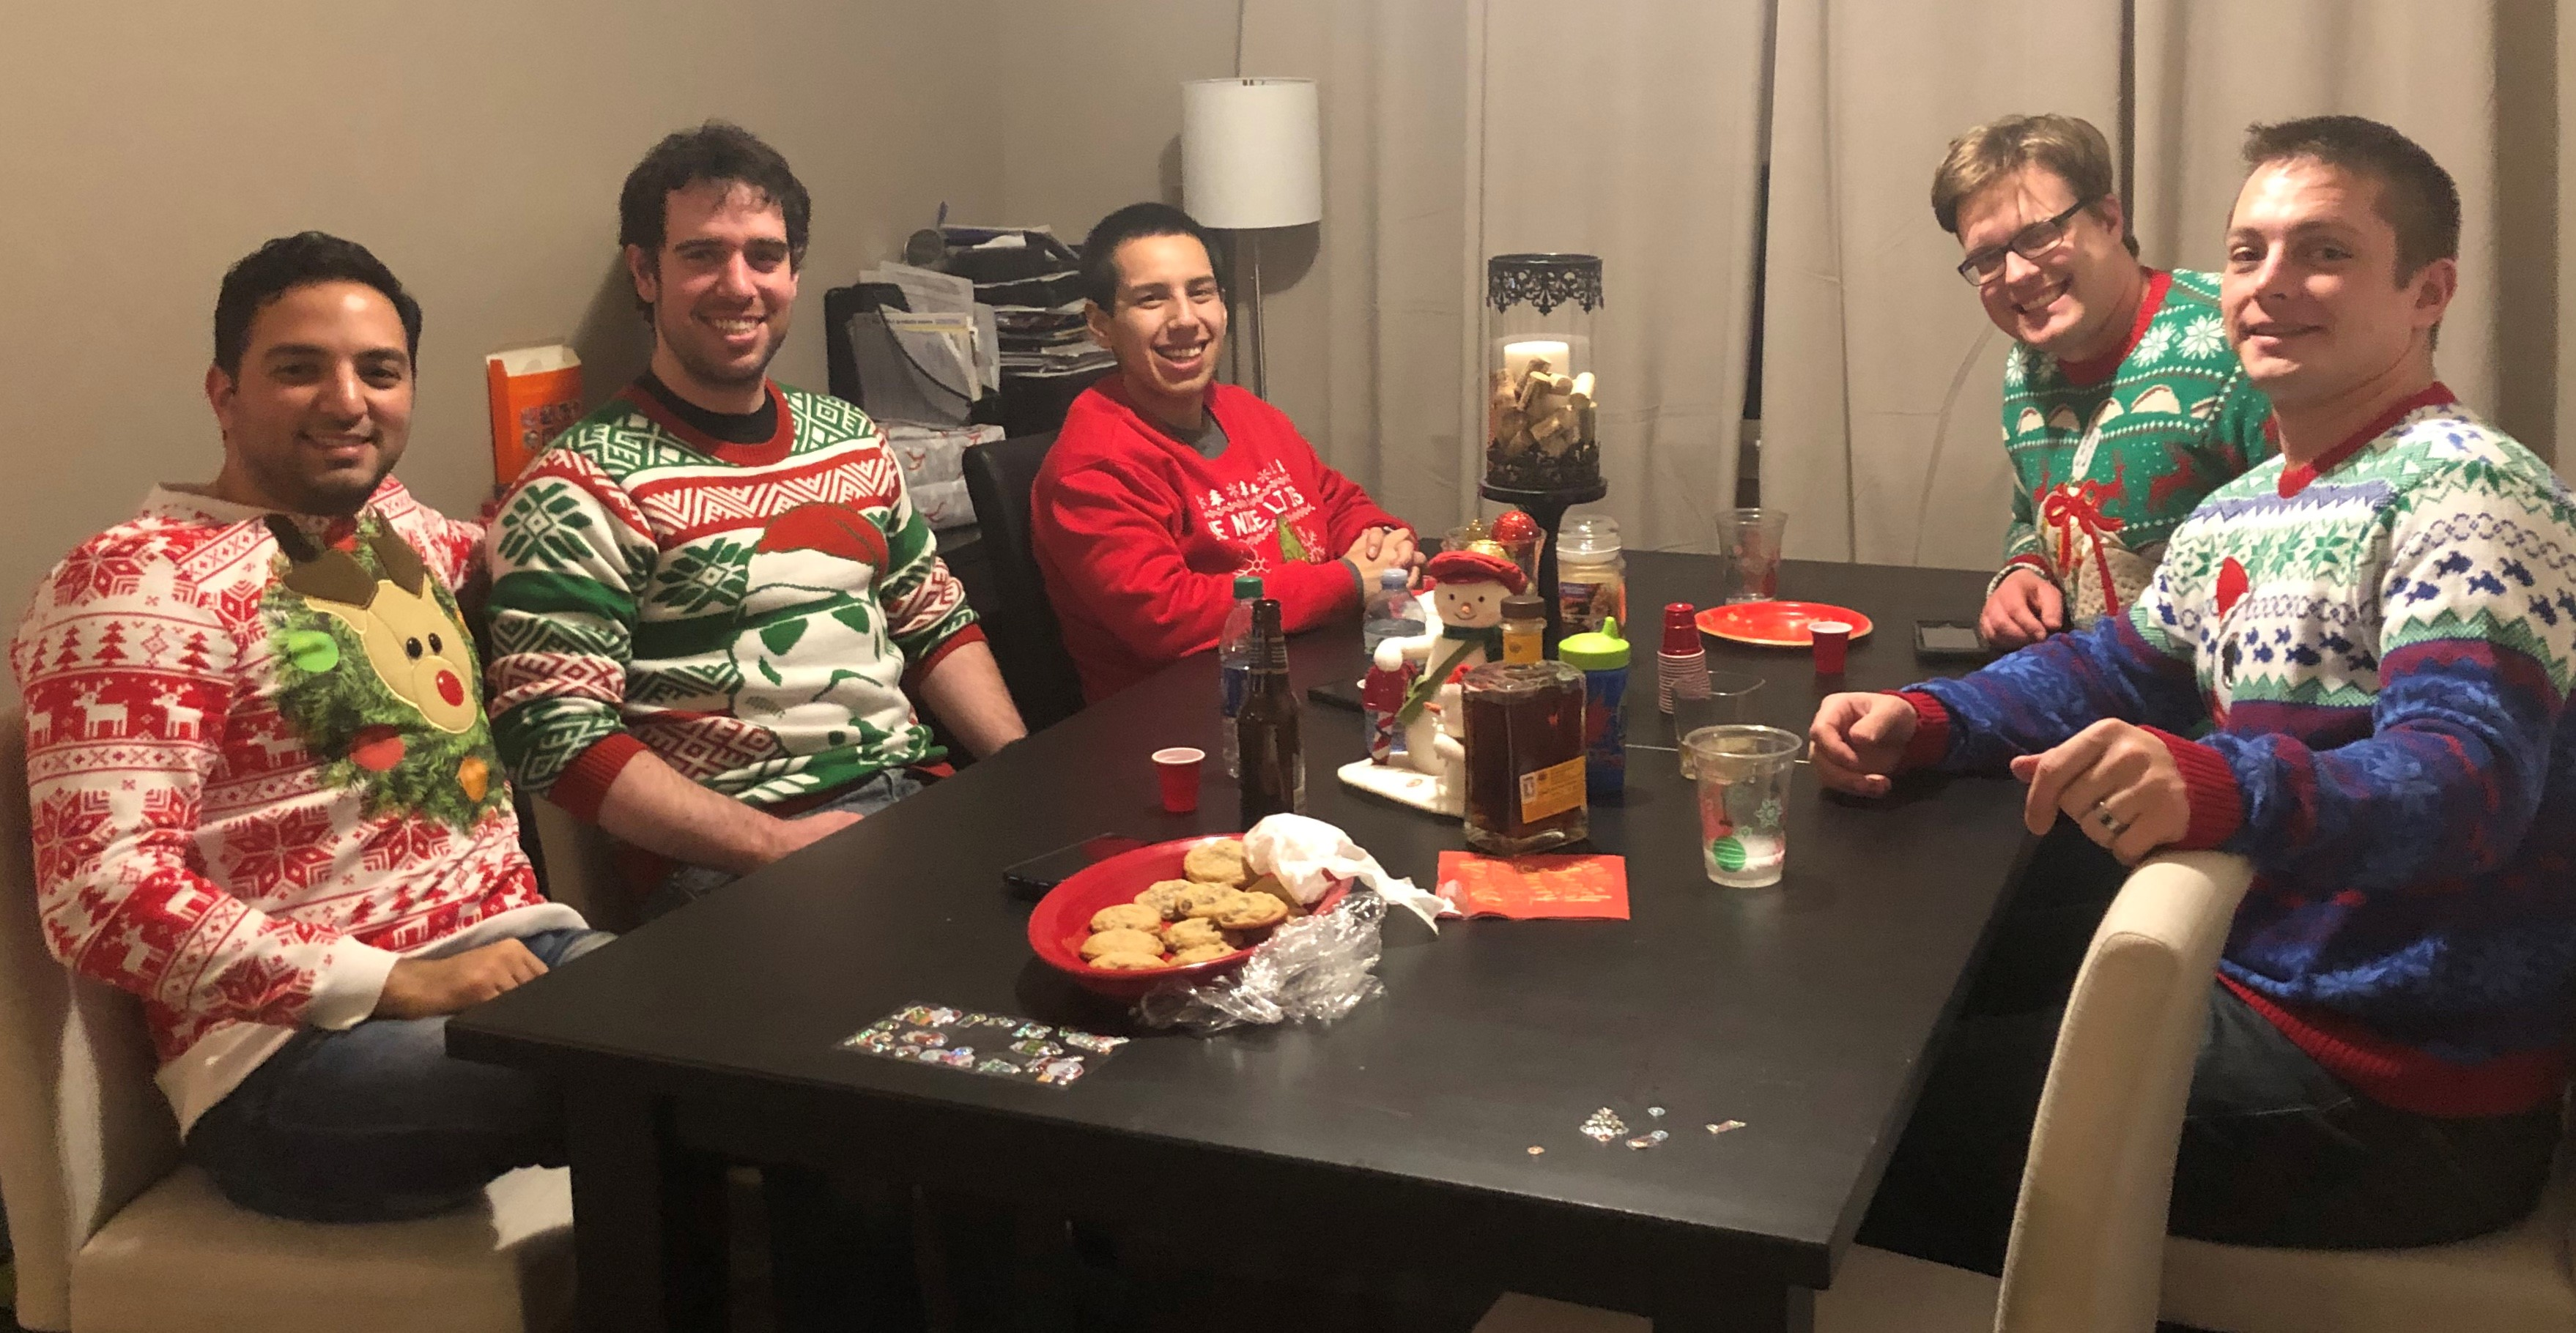 Congratulations on the Ugliest Sweaters!